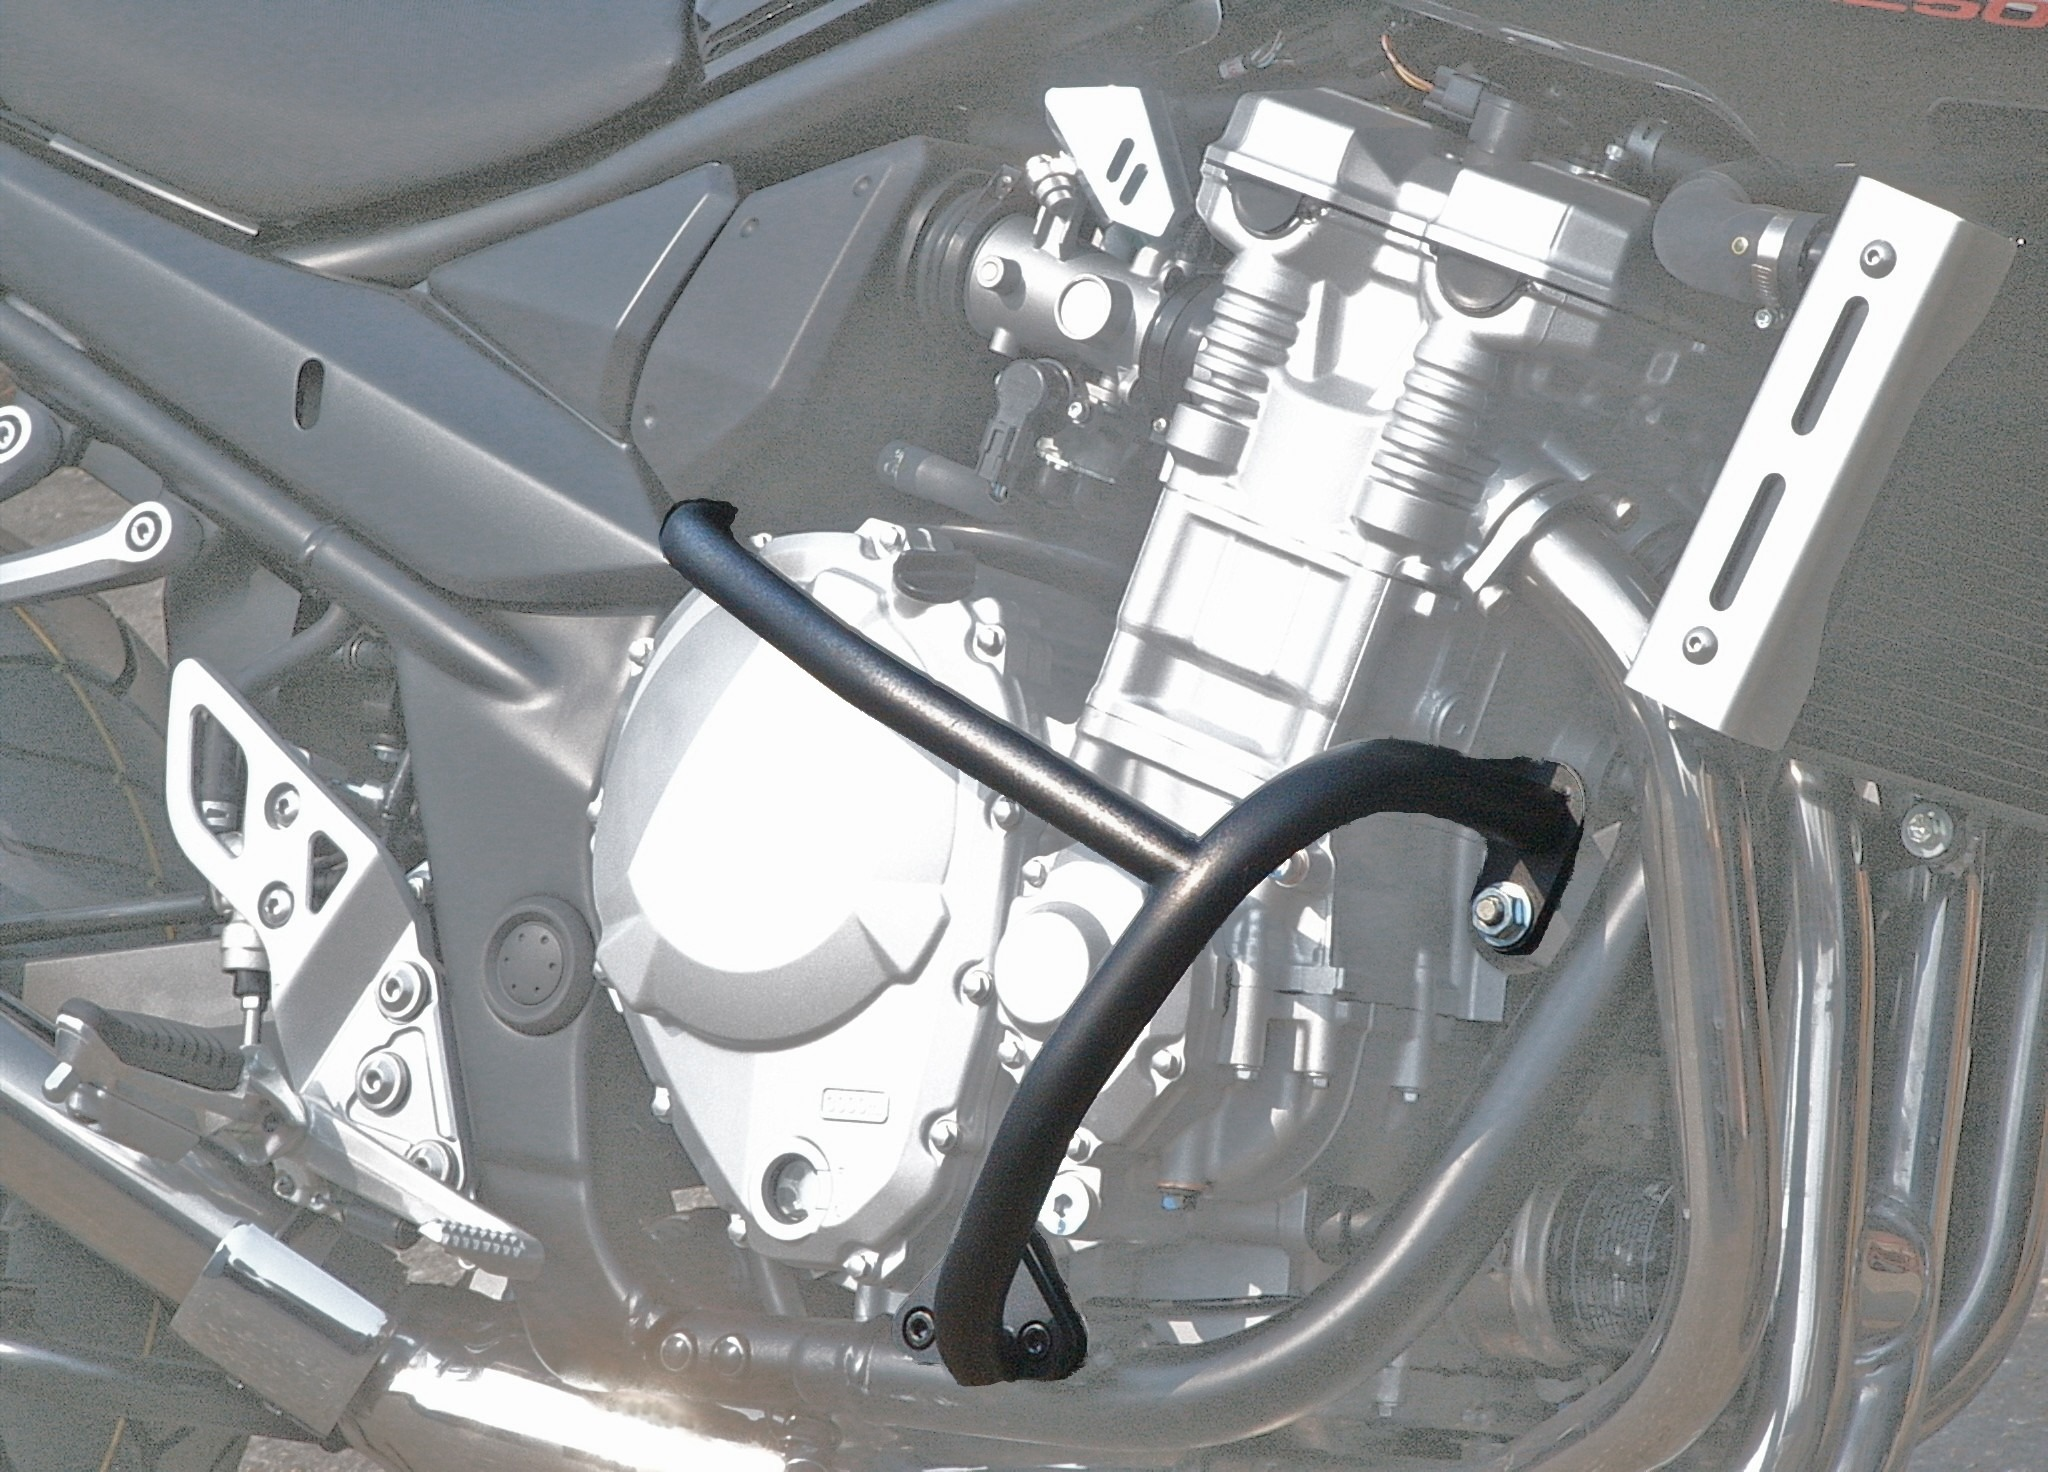 Suzuki GSF1250 K7-L0 (2007-2010) Bandit Engine Bars In Black